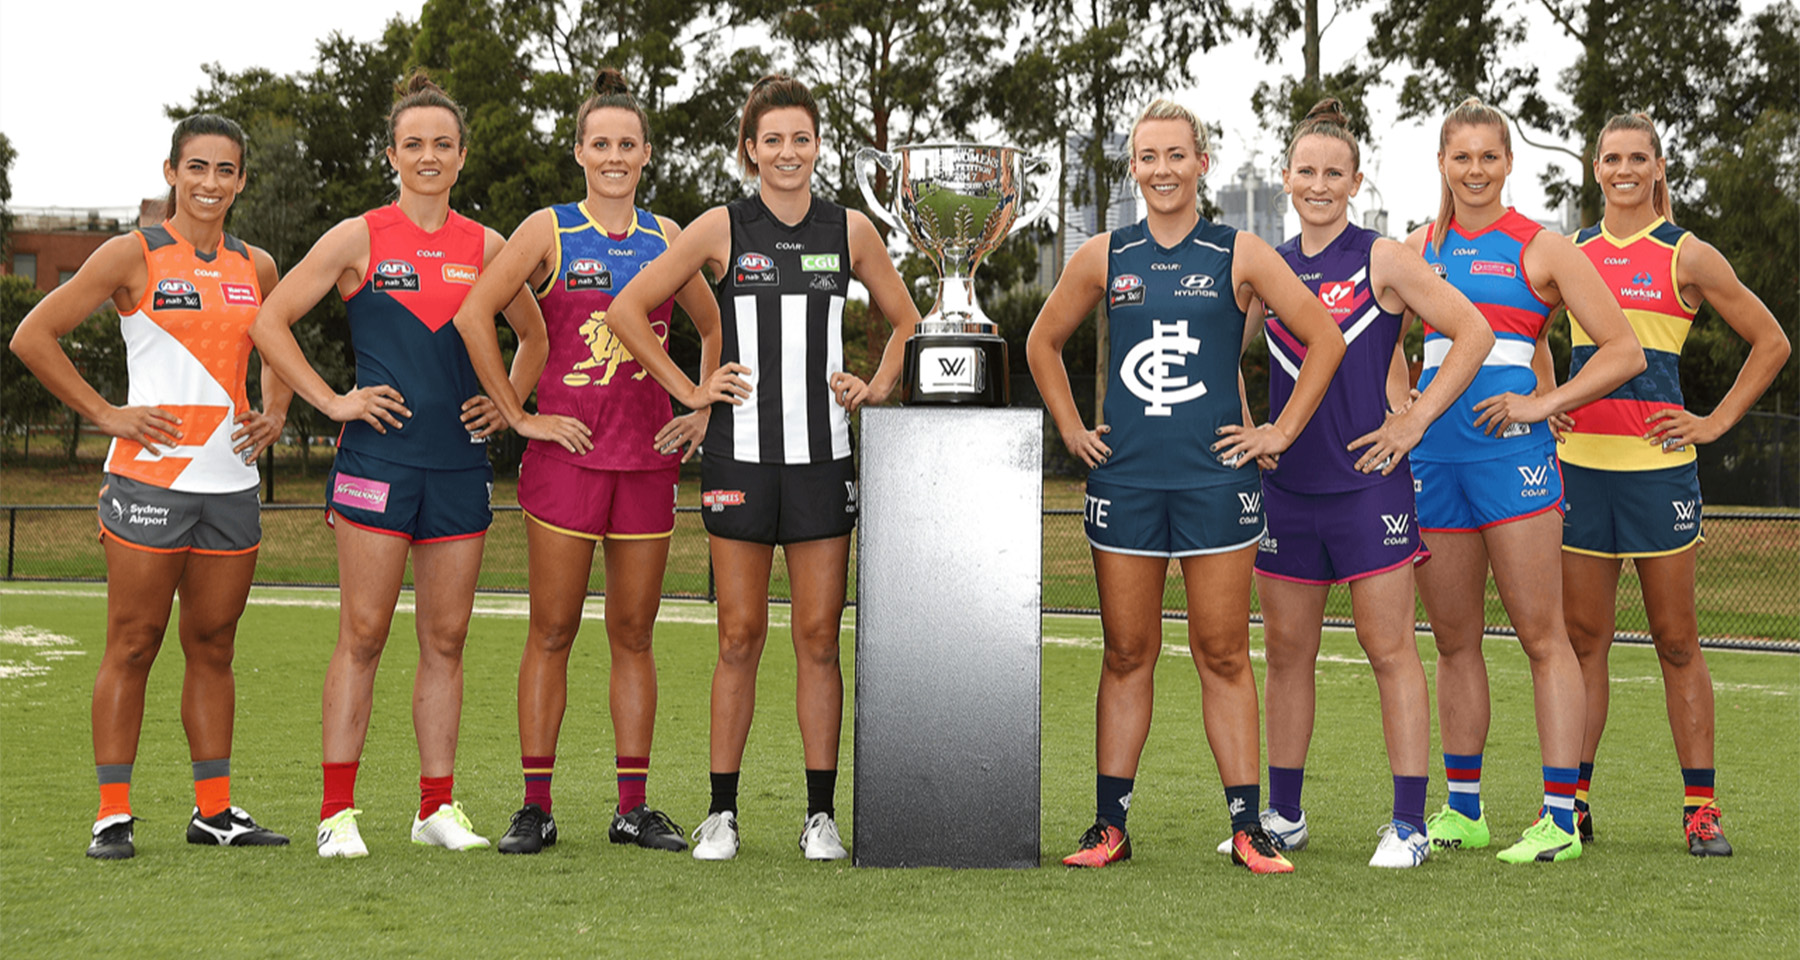 Herald Sun generates key partnerships, ad revenue with women's football coverage